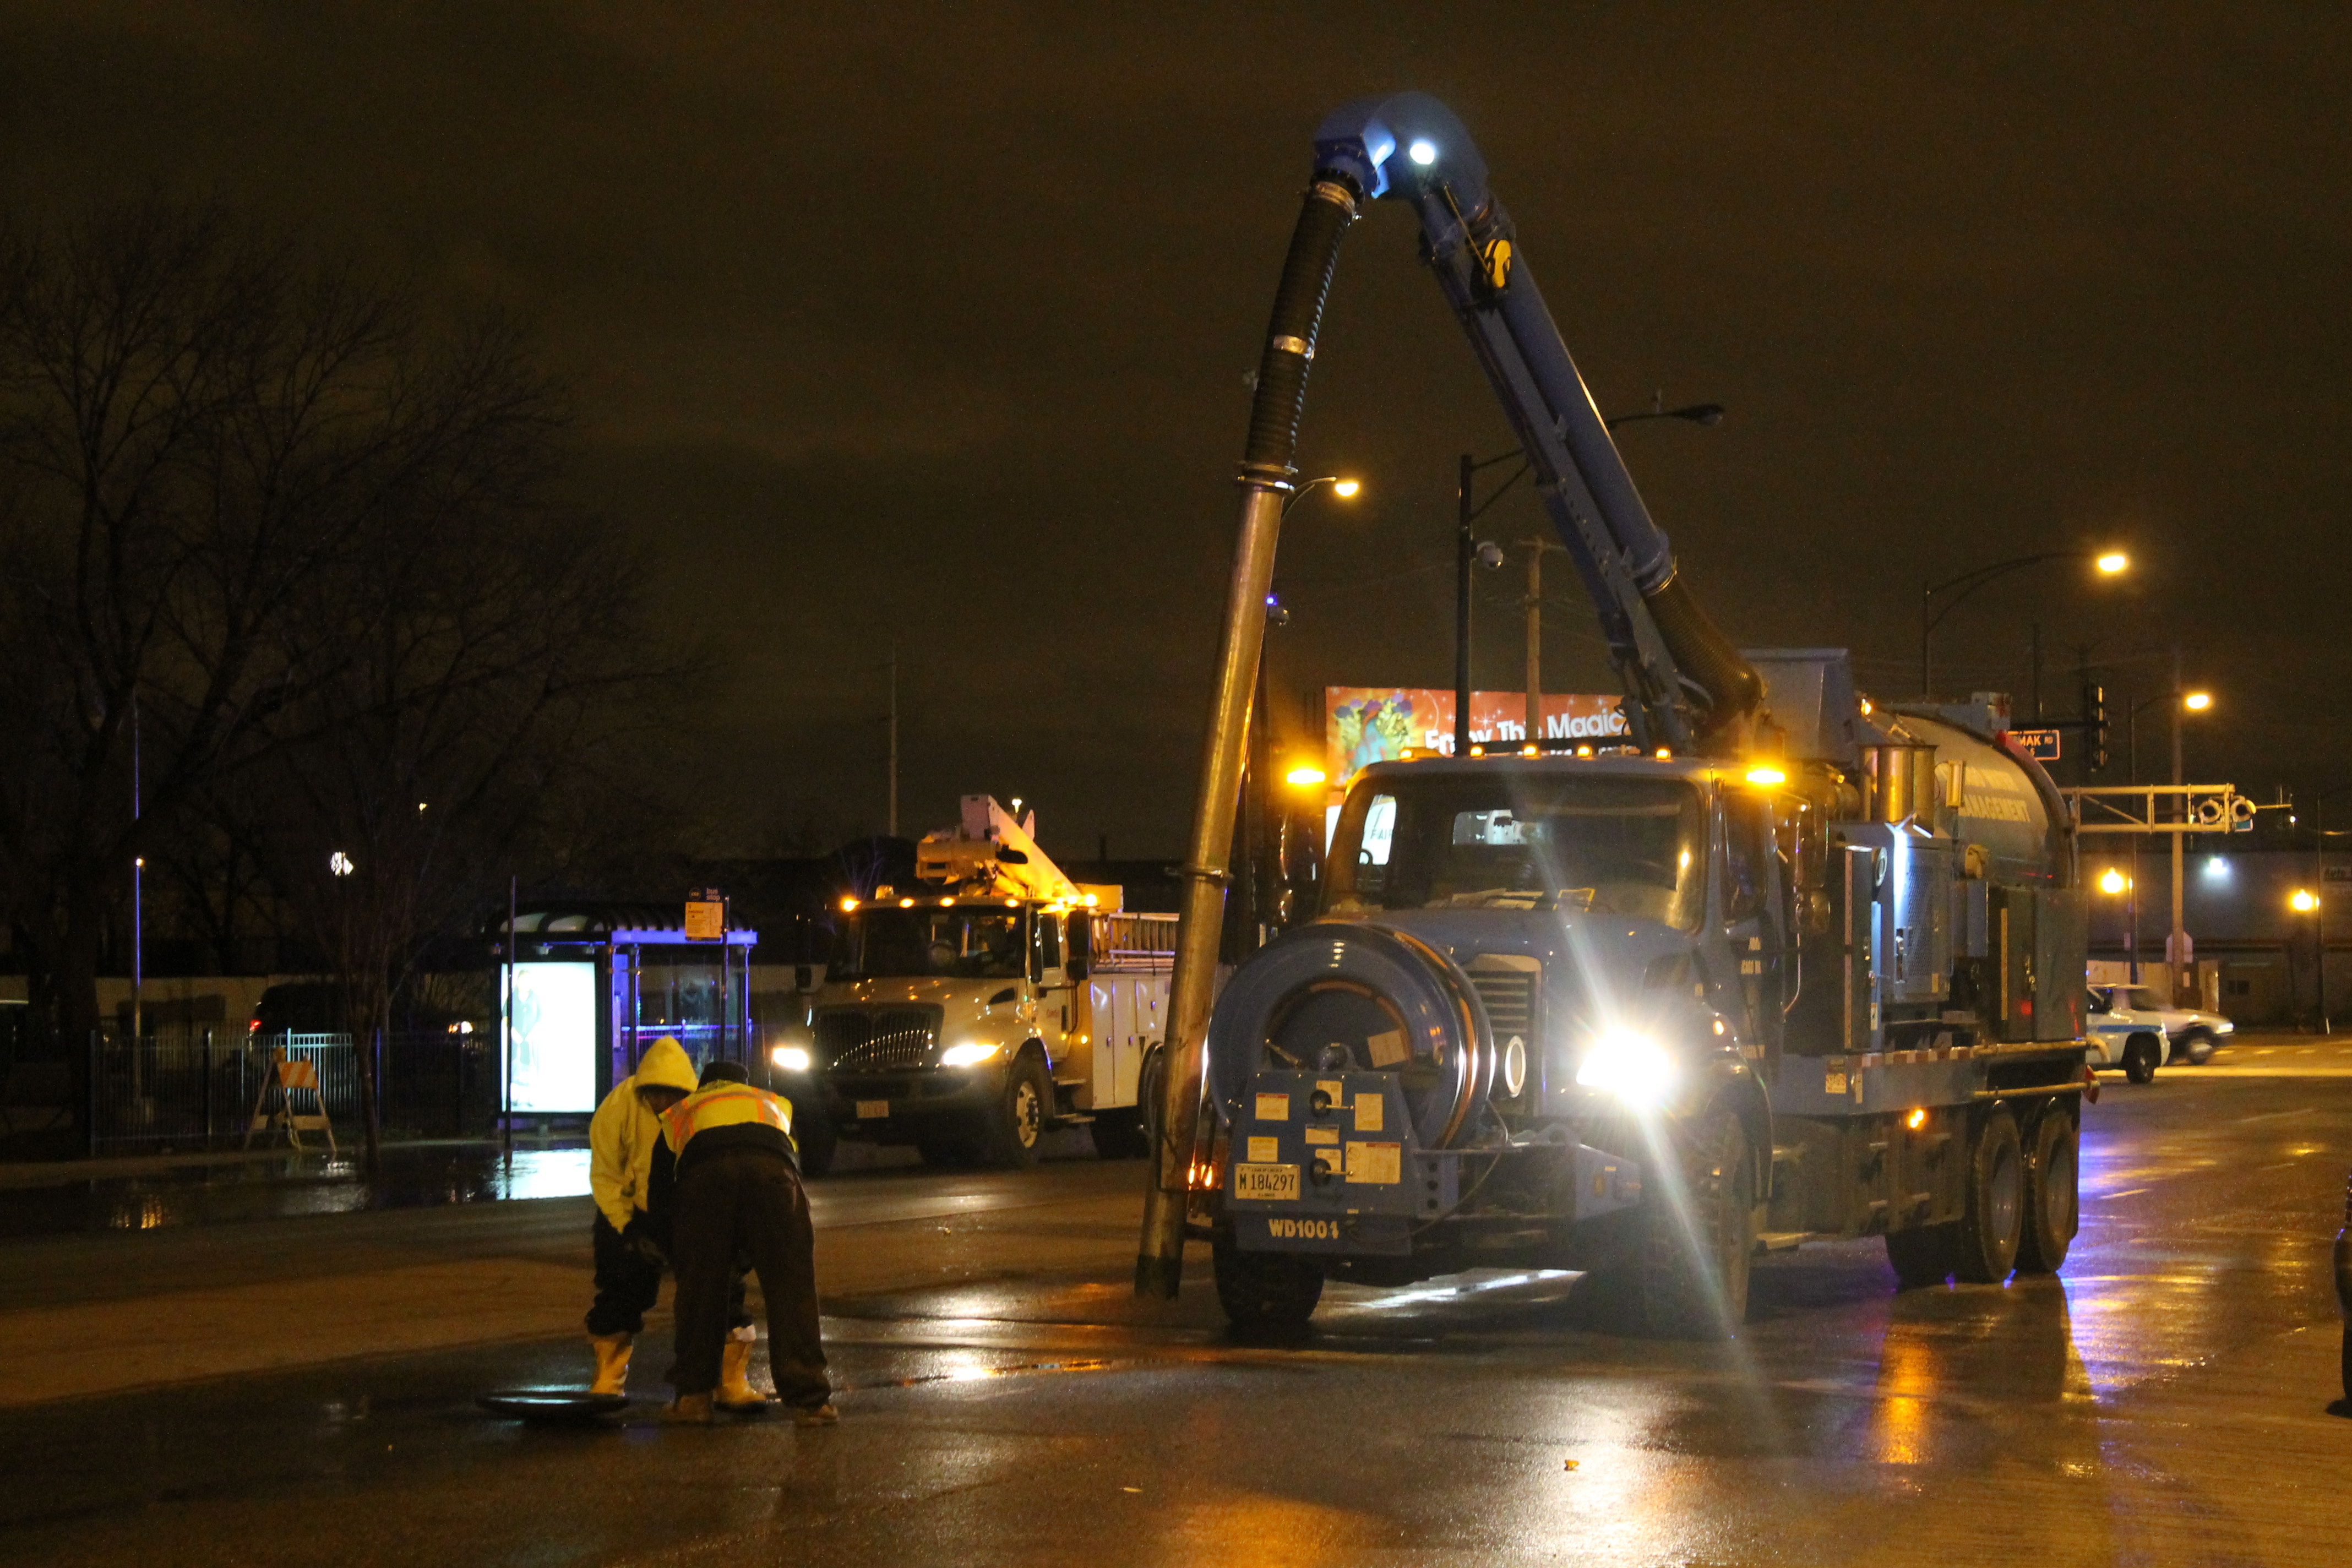 crews working overnight at a water main break